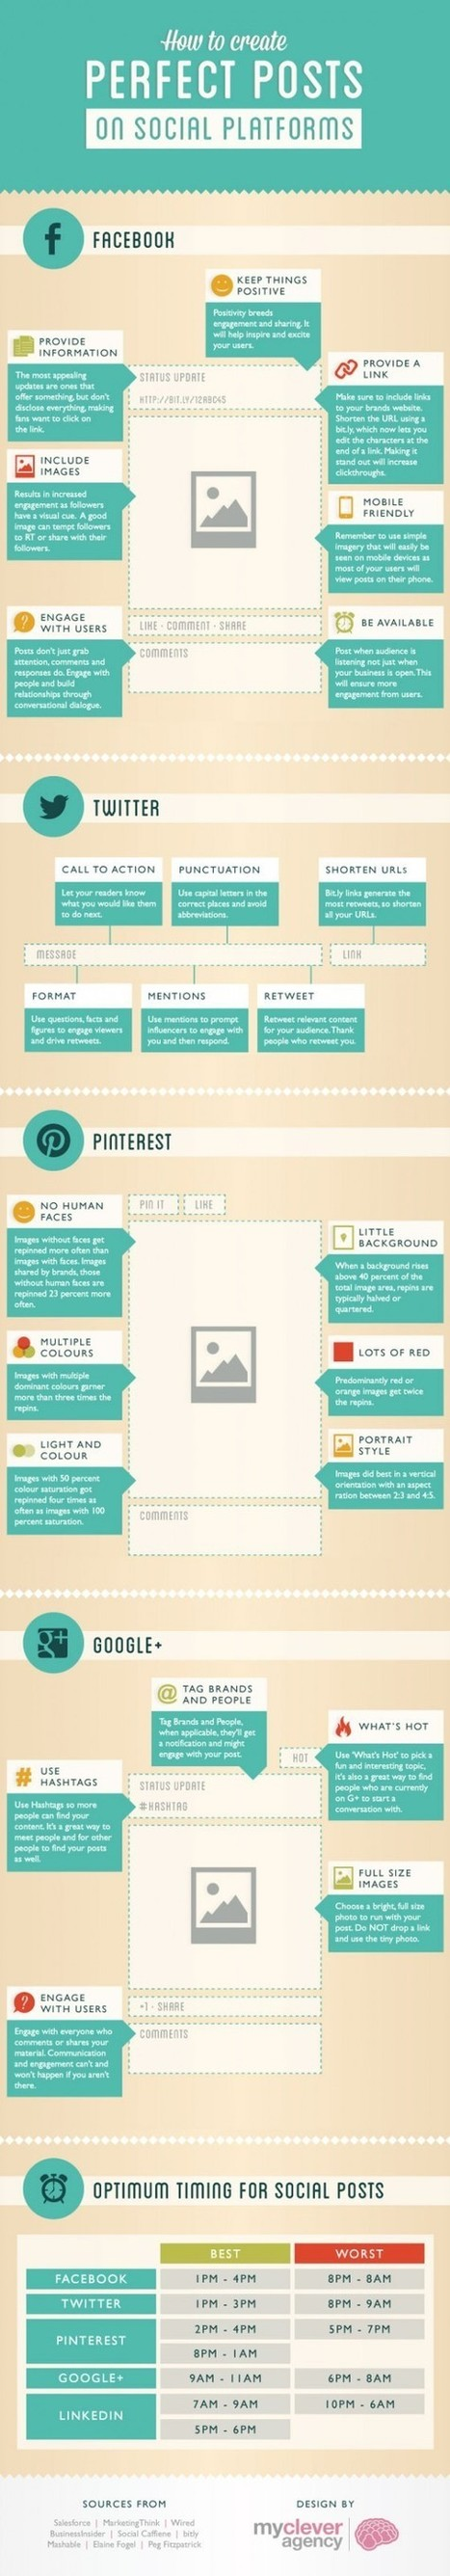 Comment Publier Efficacement sur Facebook, Twitter, Pinterest et Google+ ? | Emarketinglicious | Jean-Fabien | Scoop.it